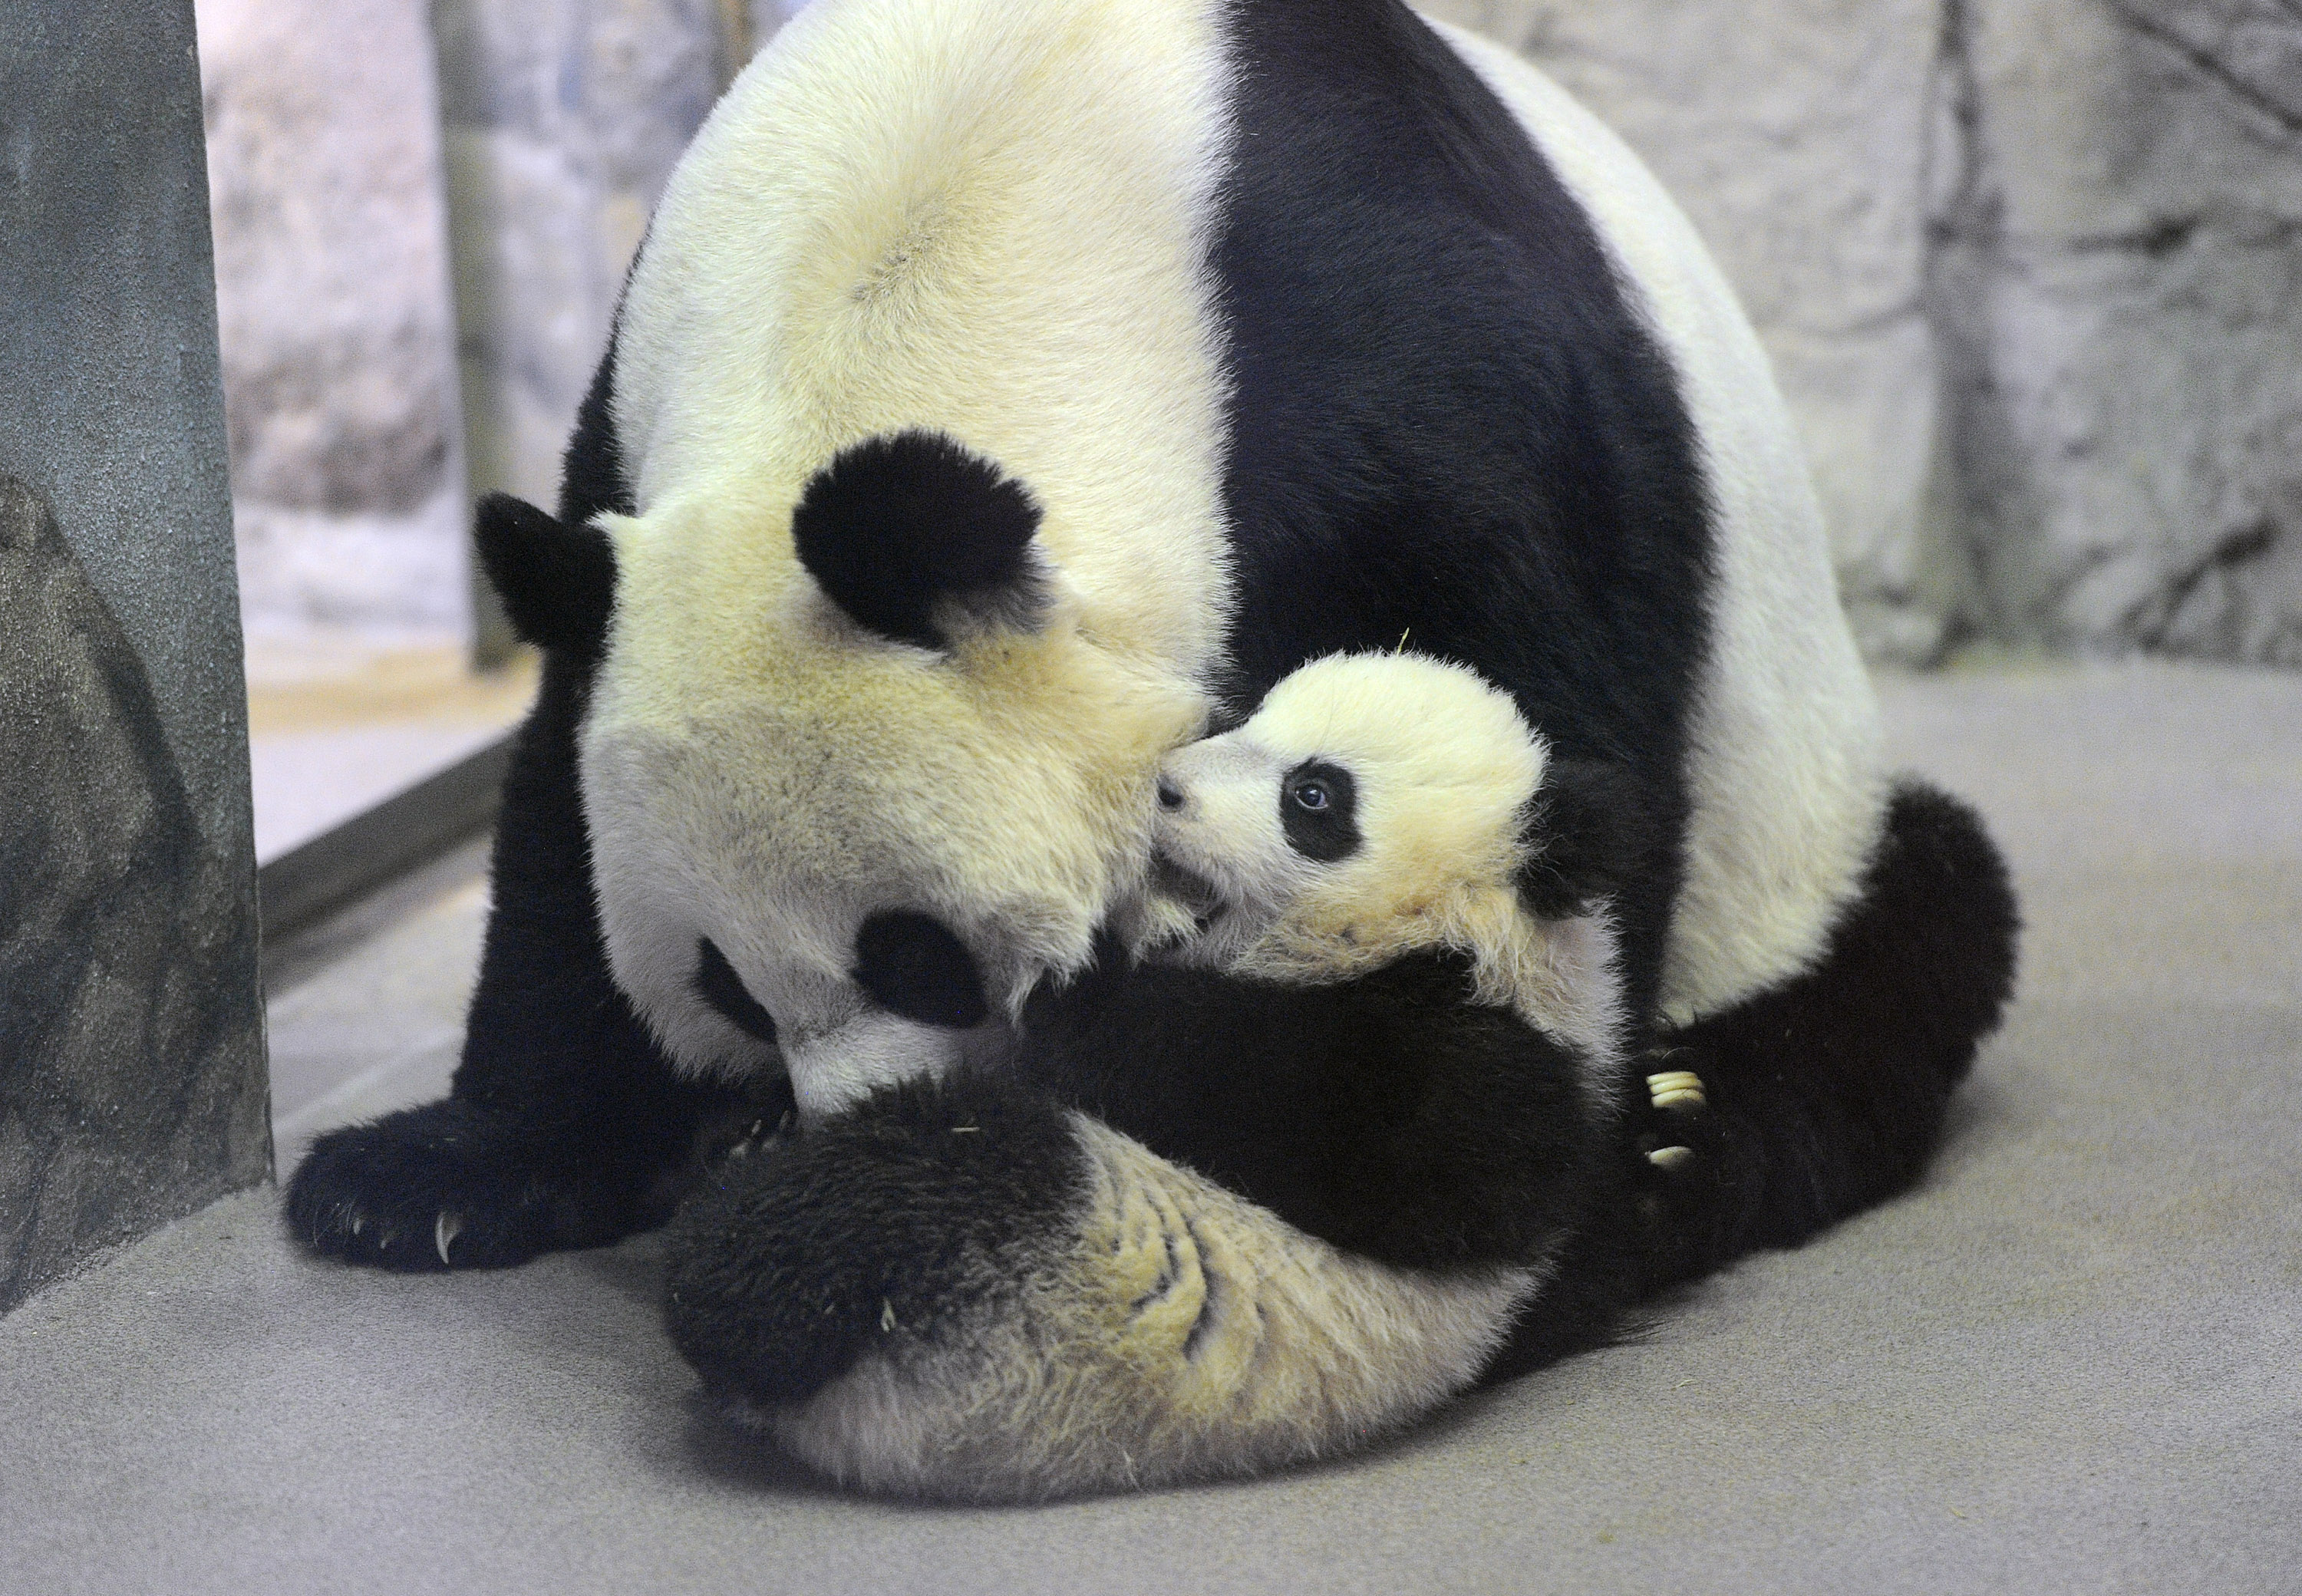 Giant panda cub, Bao Bao, right, interacts with her mother, Mei Xiang, left, at the Smithsonian National Zoological Park on Tuesday January 07, 2014 in Washington, DC.